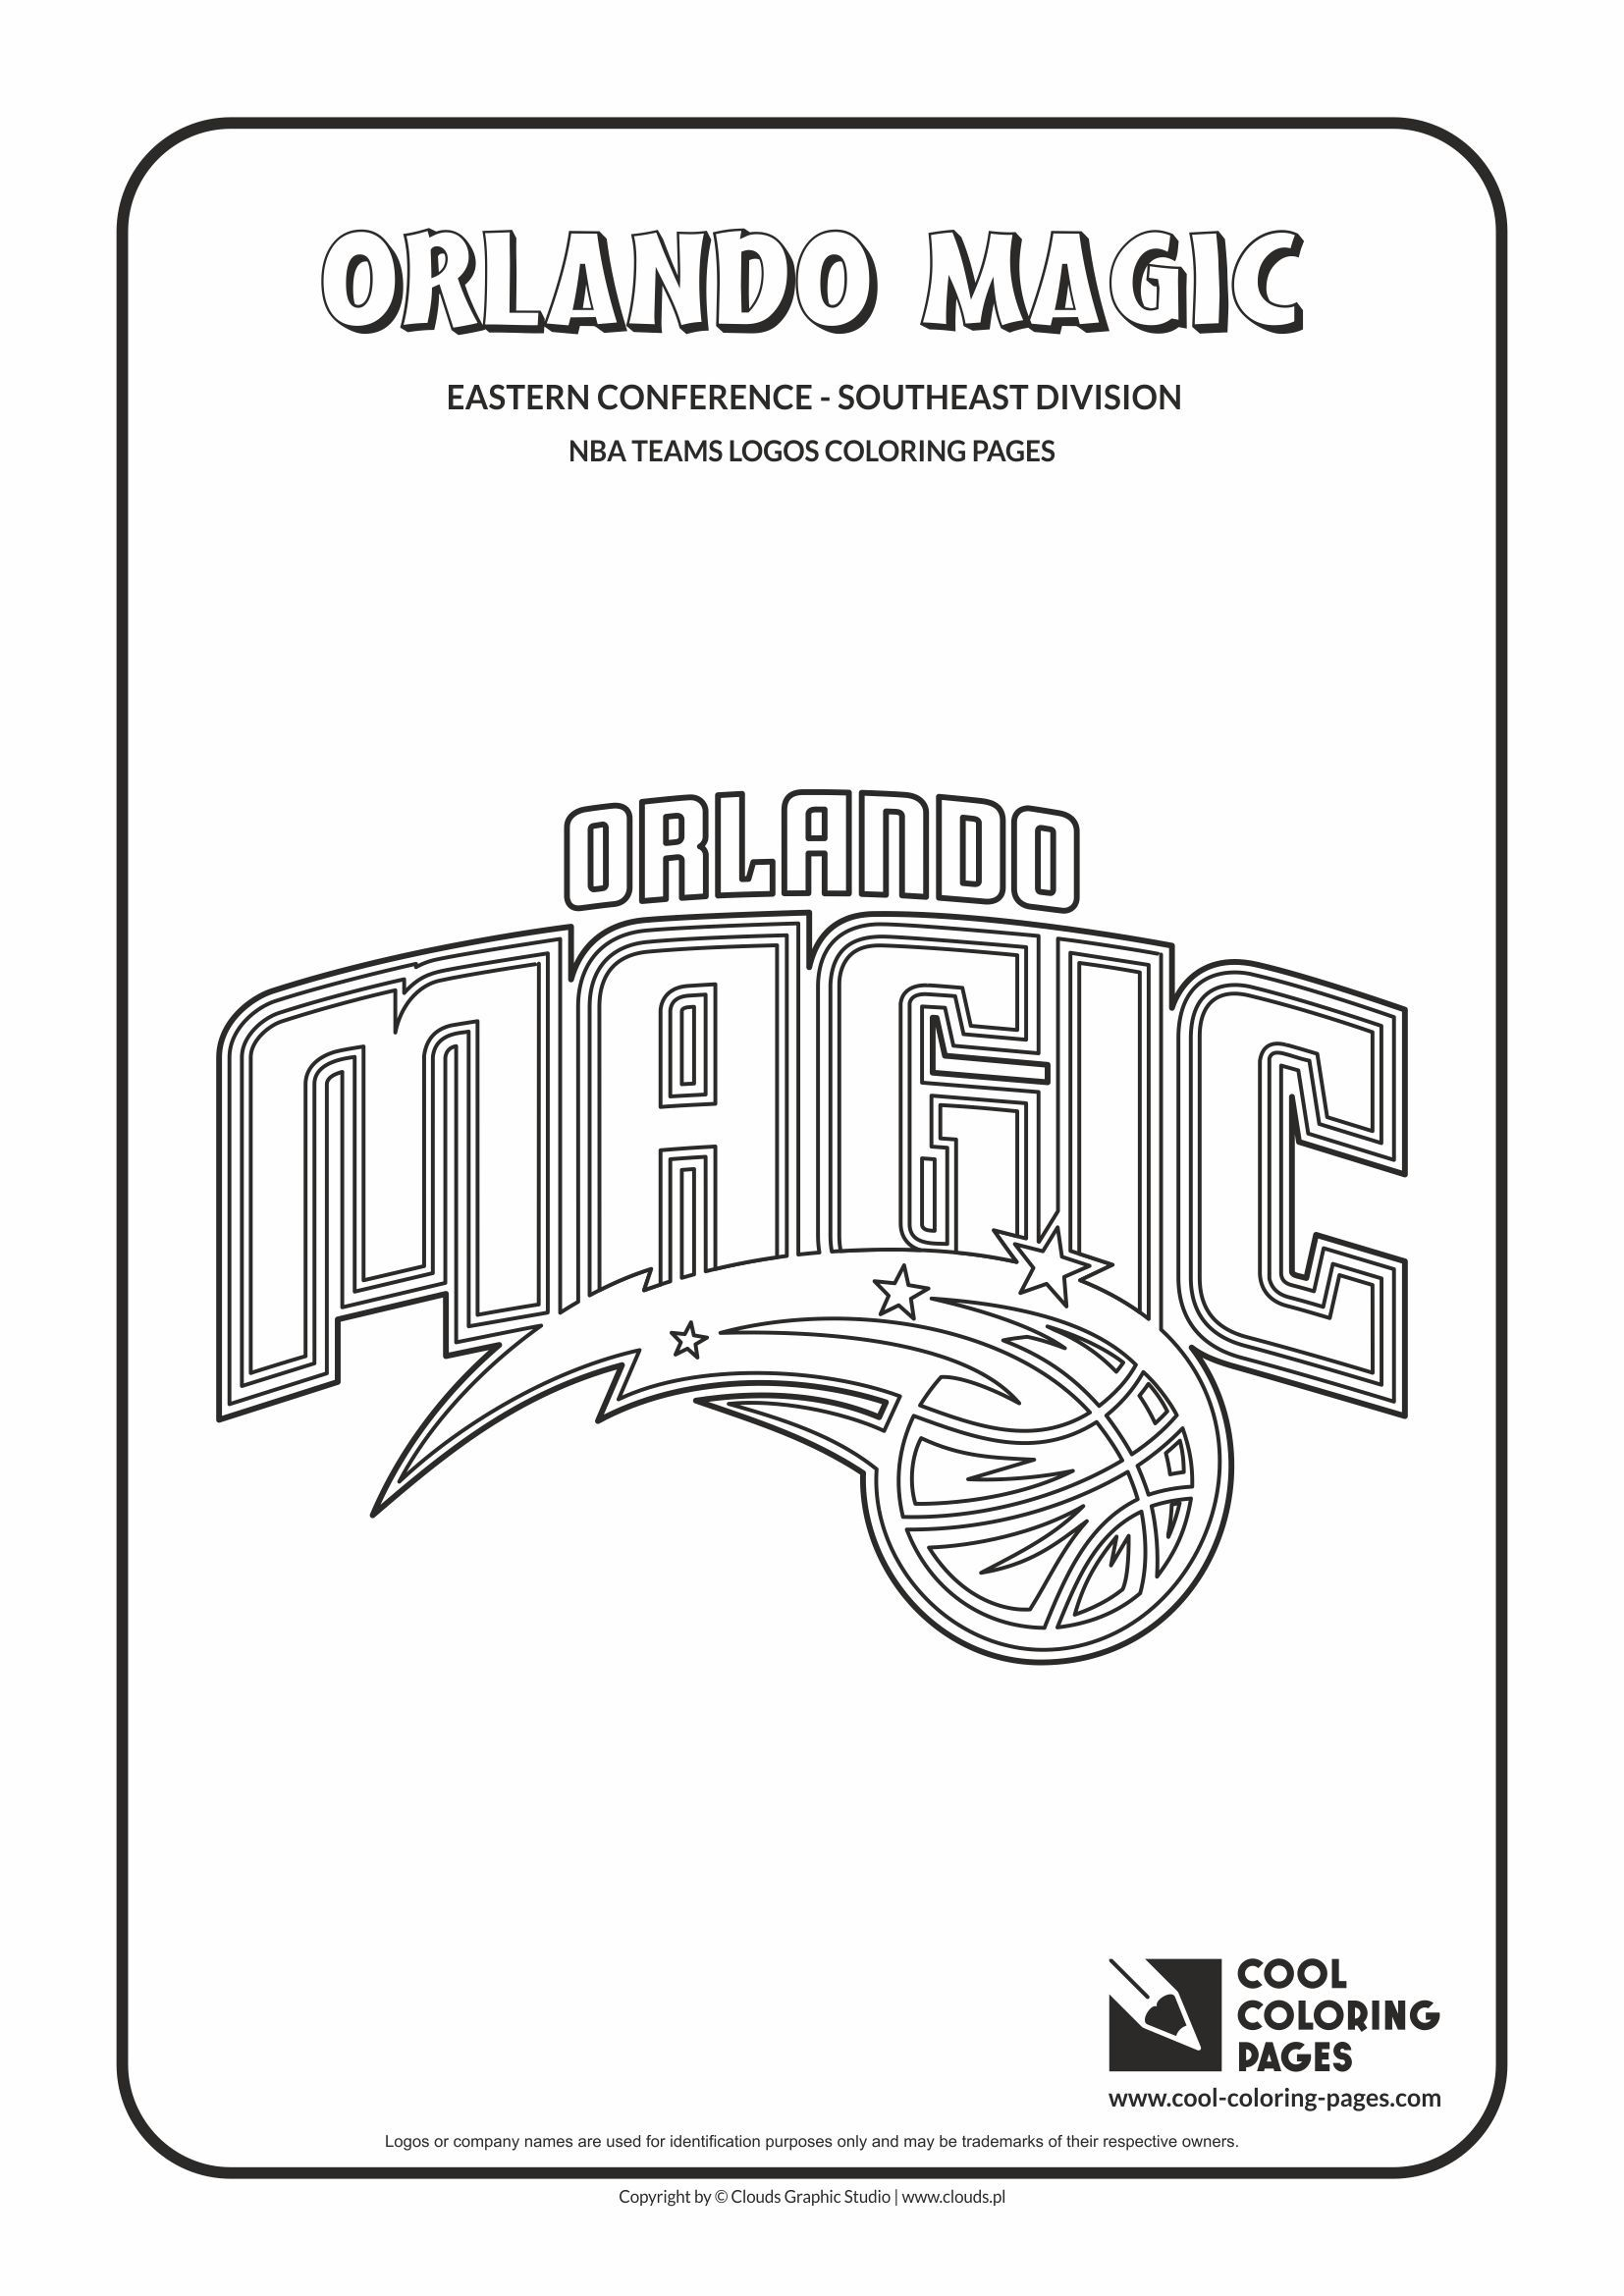 Cool Coloring Pages Nba Basketball Clubs Logos Easter Conference Southeast Coloring Pages Cool Coloring Pages Orlando Magic